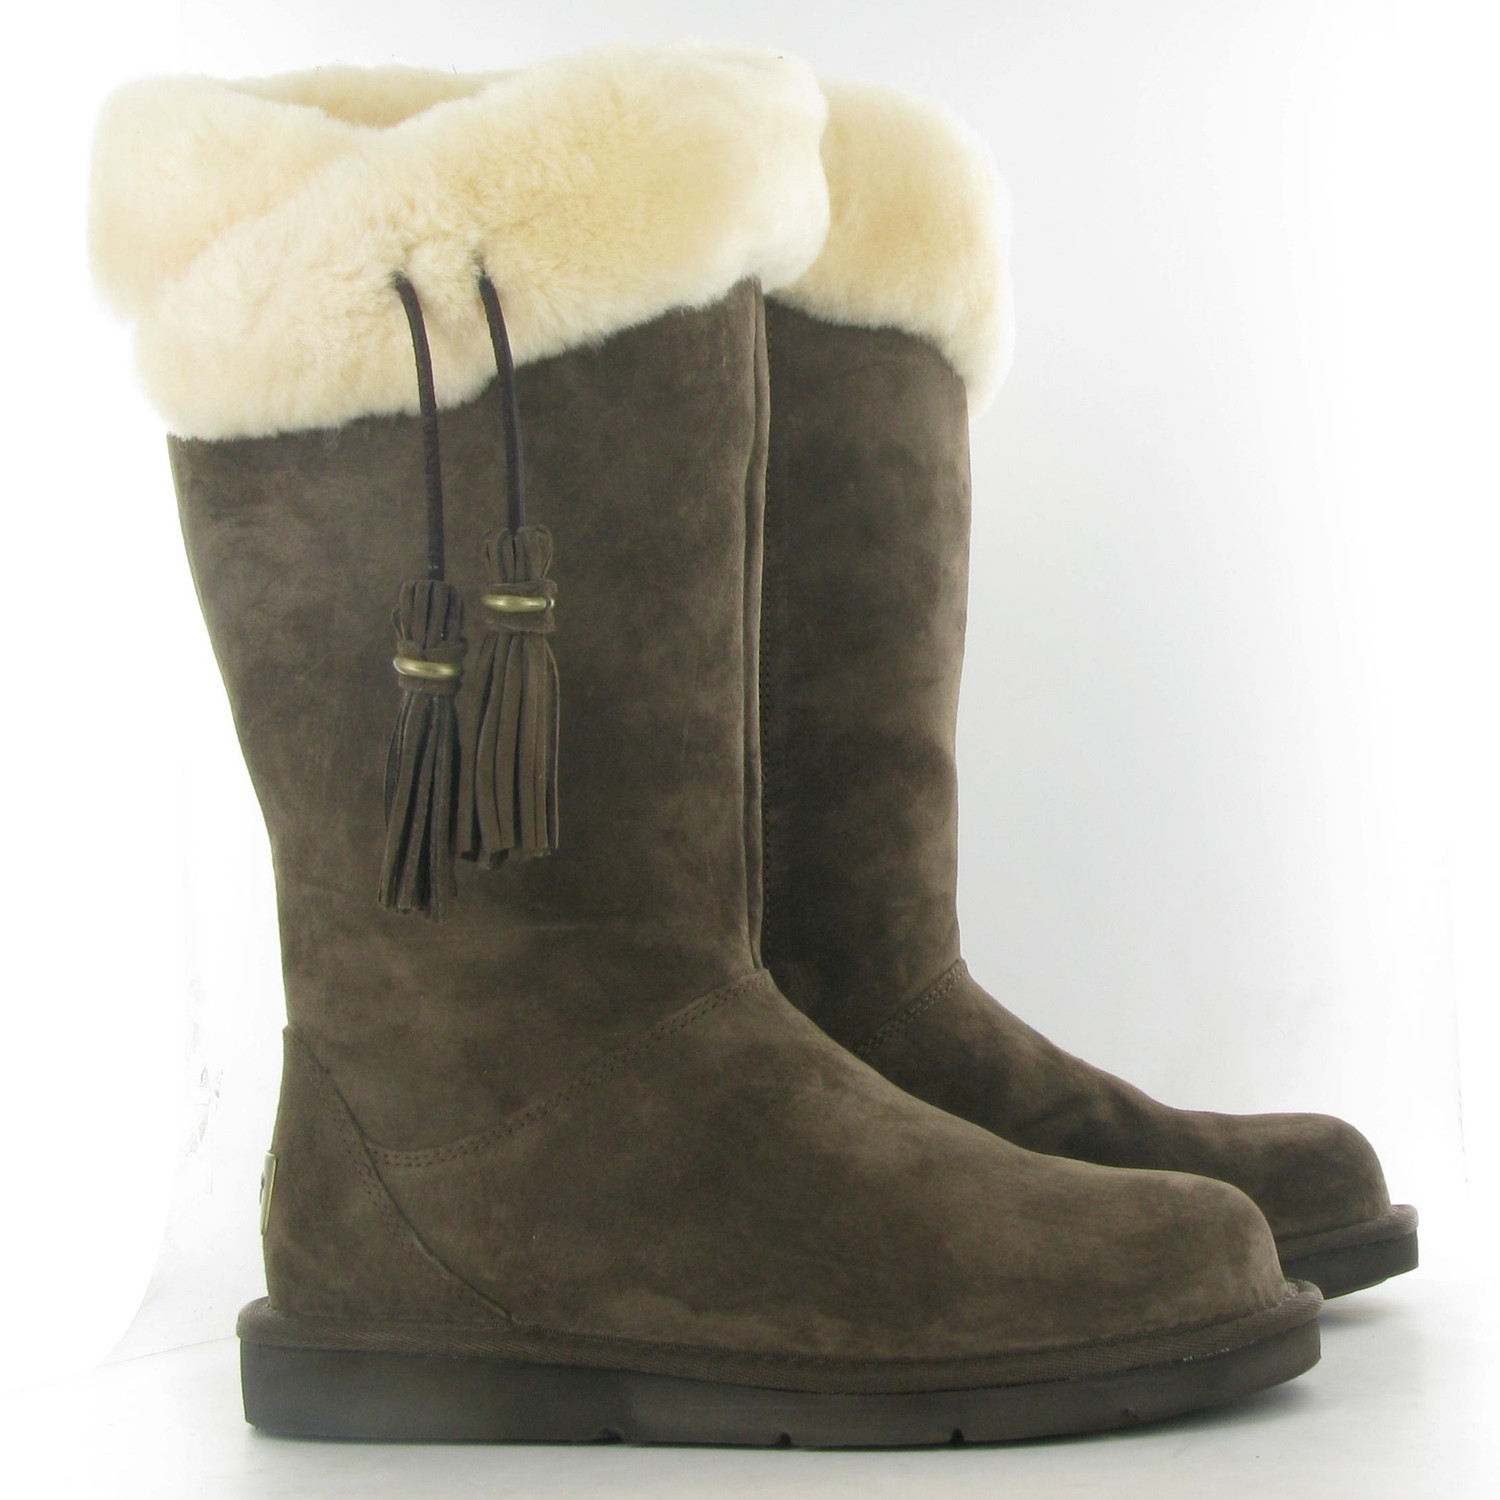 Australia Ugg Boots Latest Designs 2014